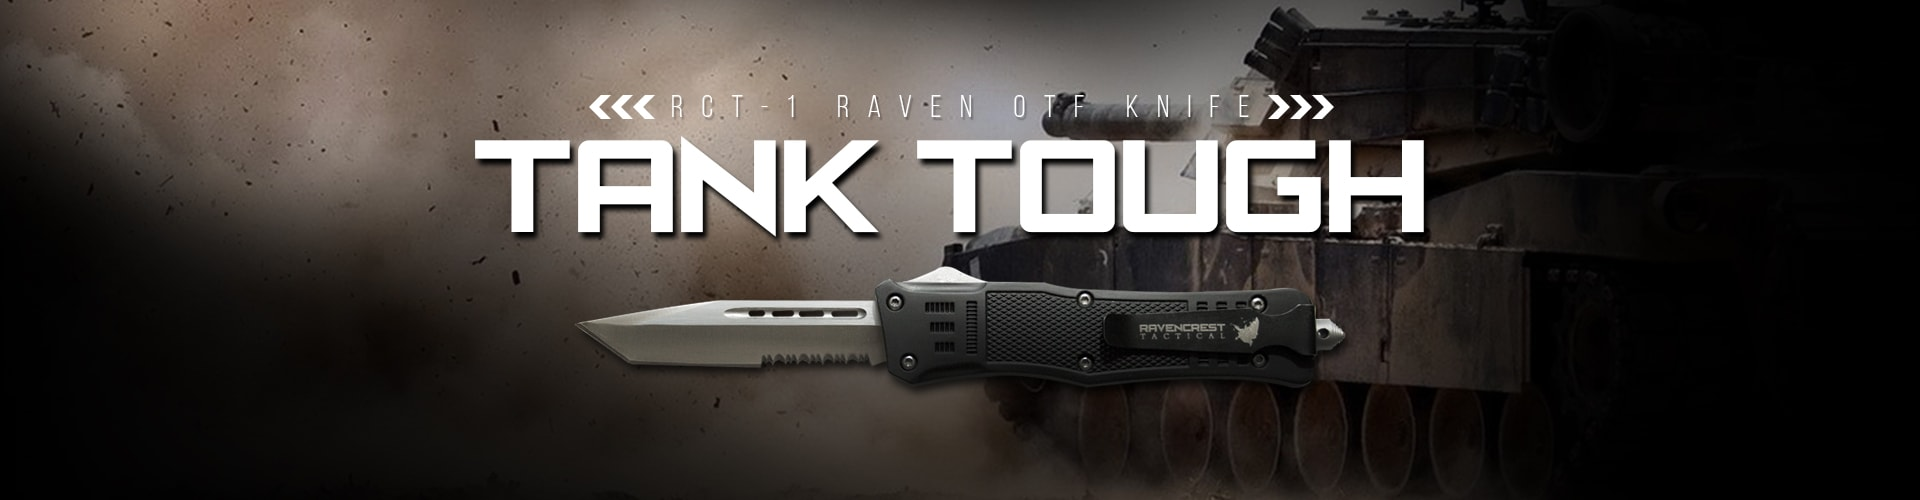 Tank Tough Knives - RavenCrest Tactical